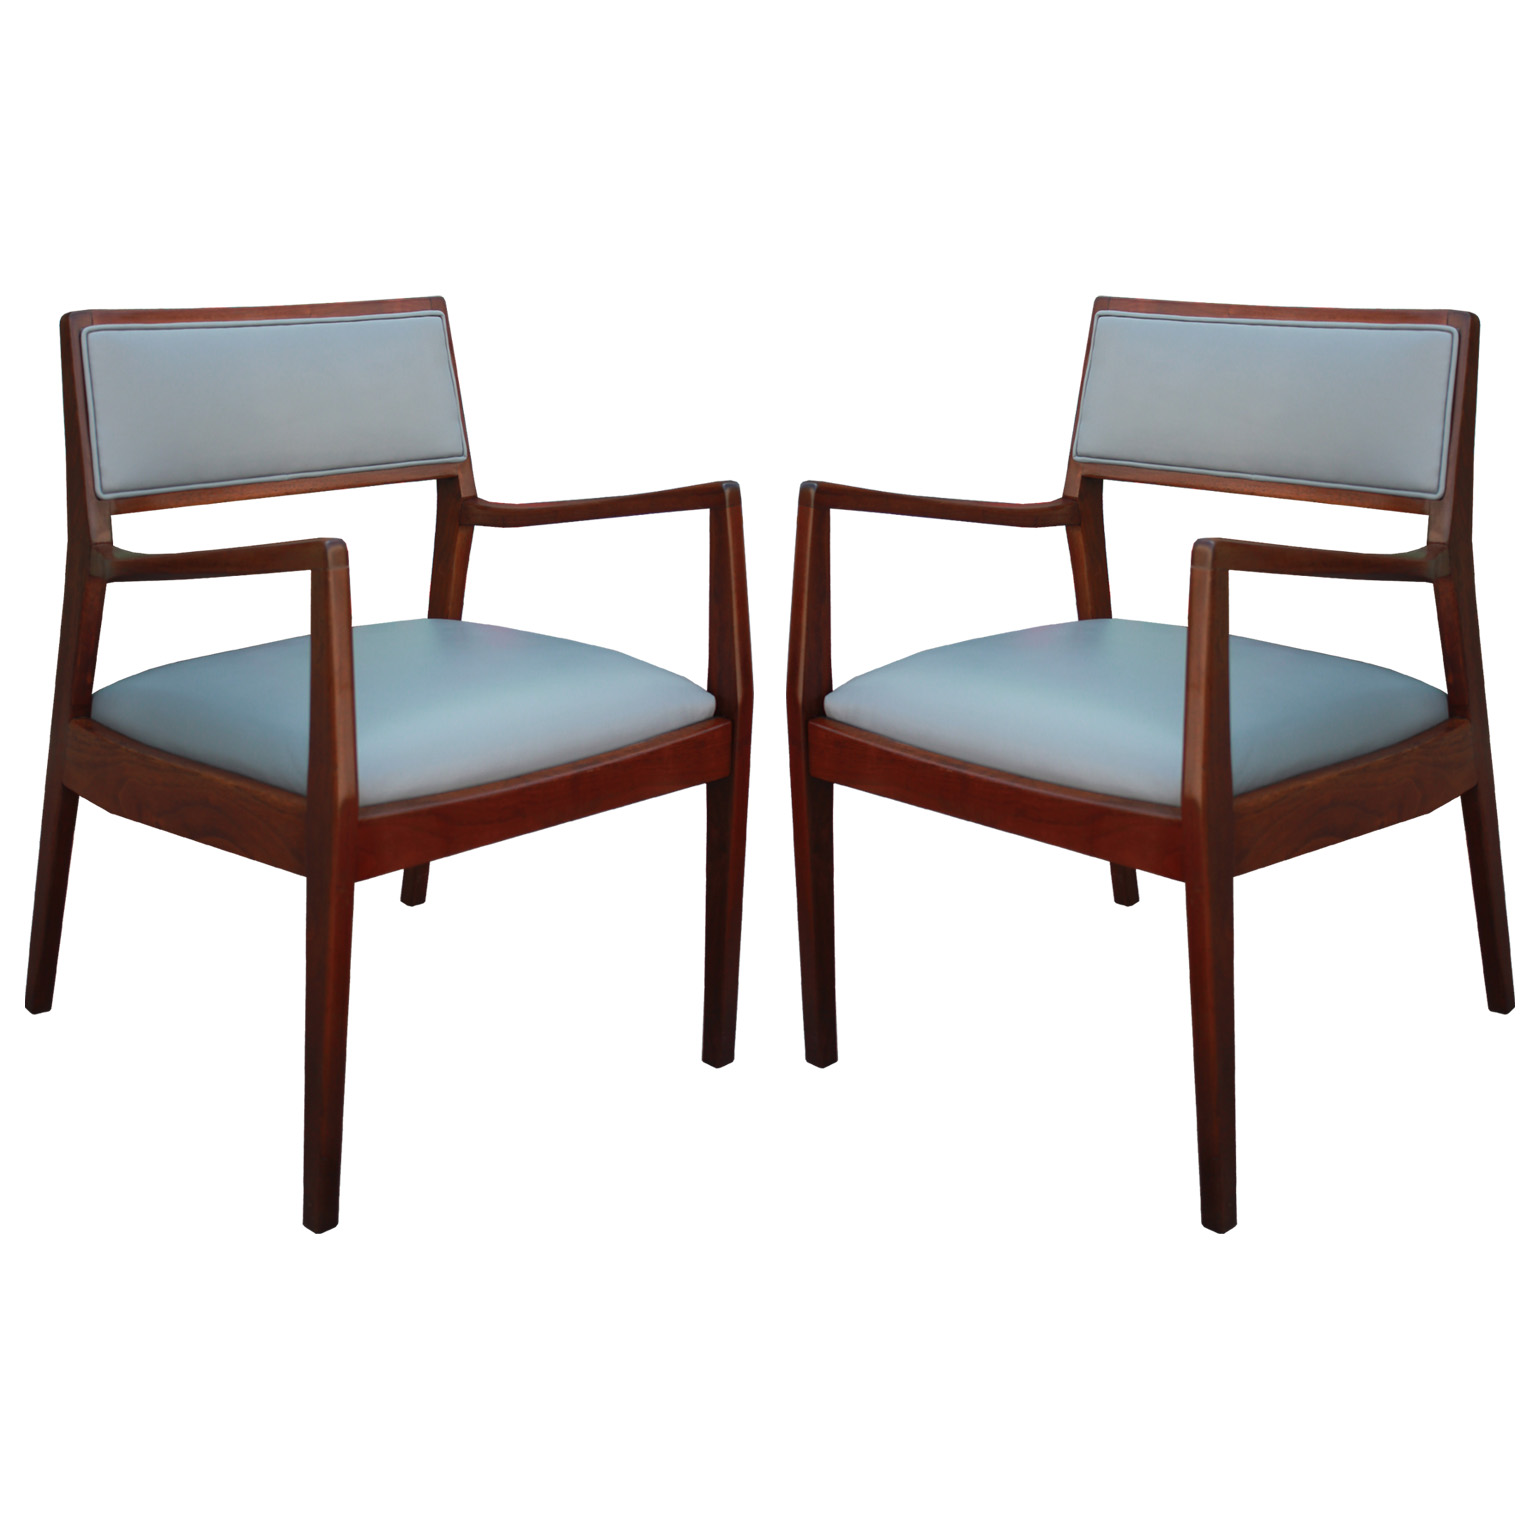 elegant pair of walnut jens risom lounge chairs in grey leather